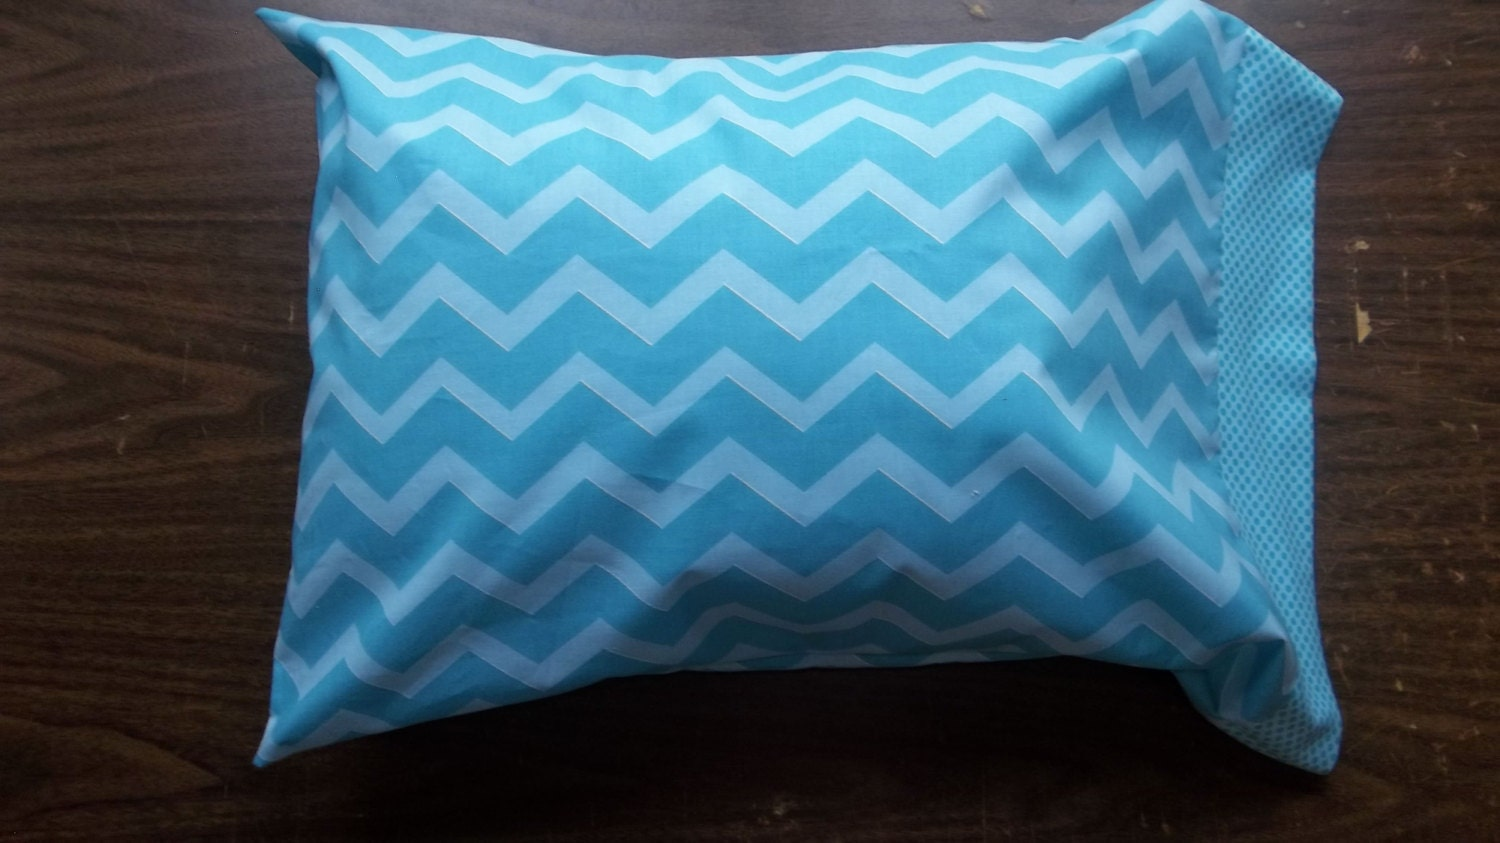 Travel pillow Case/ Toddler pillow case in 100% by crystalskye